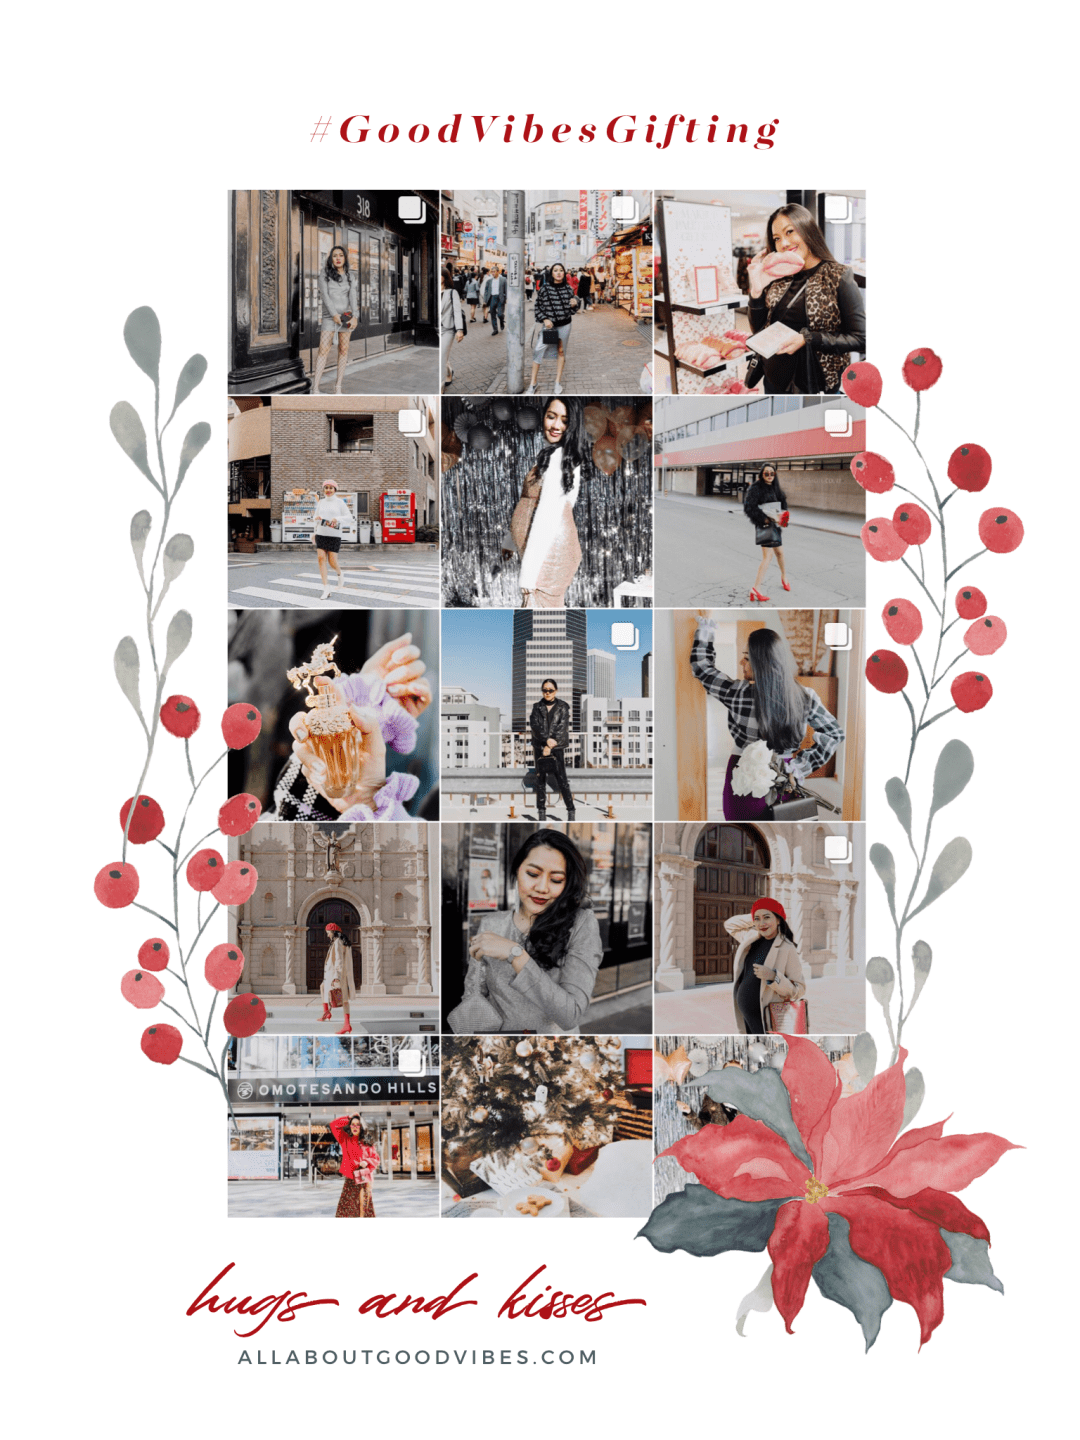 Happy Holidays | #GOODVIBESGIFTING Winner Announcement _allaboutgoodvibes.com IG @thevibescloset